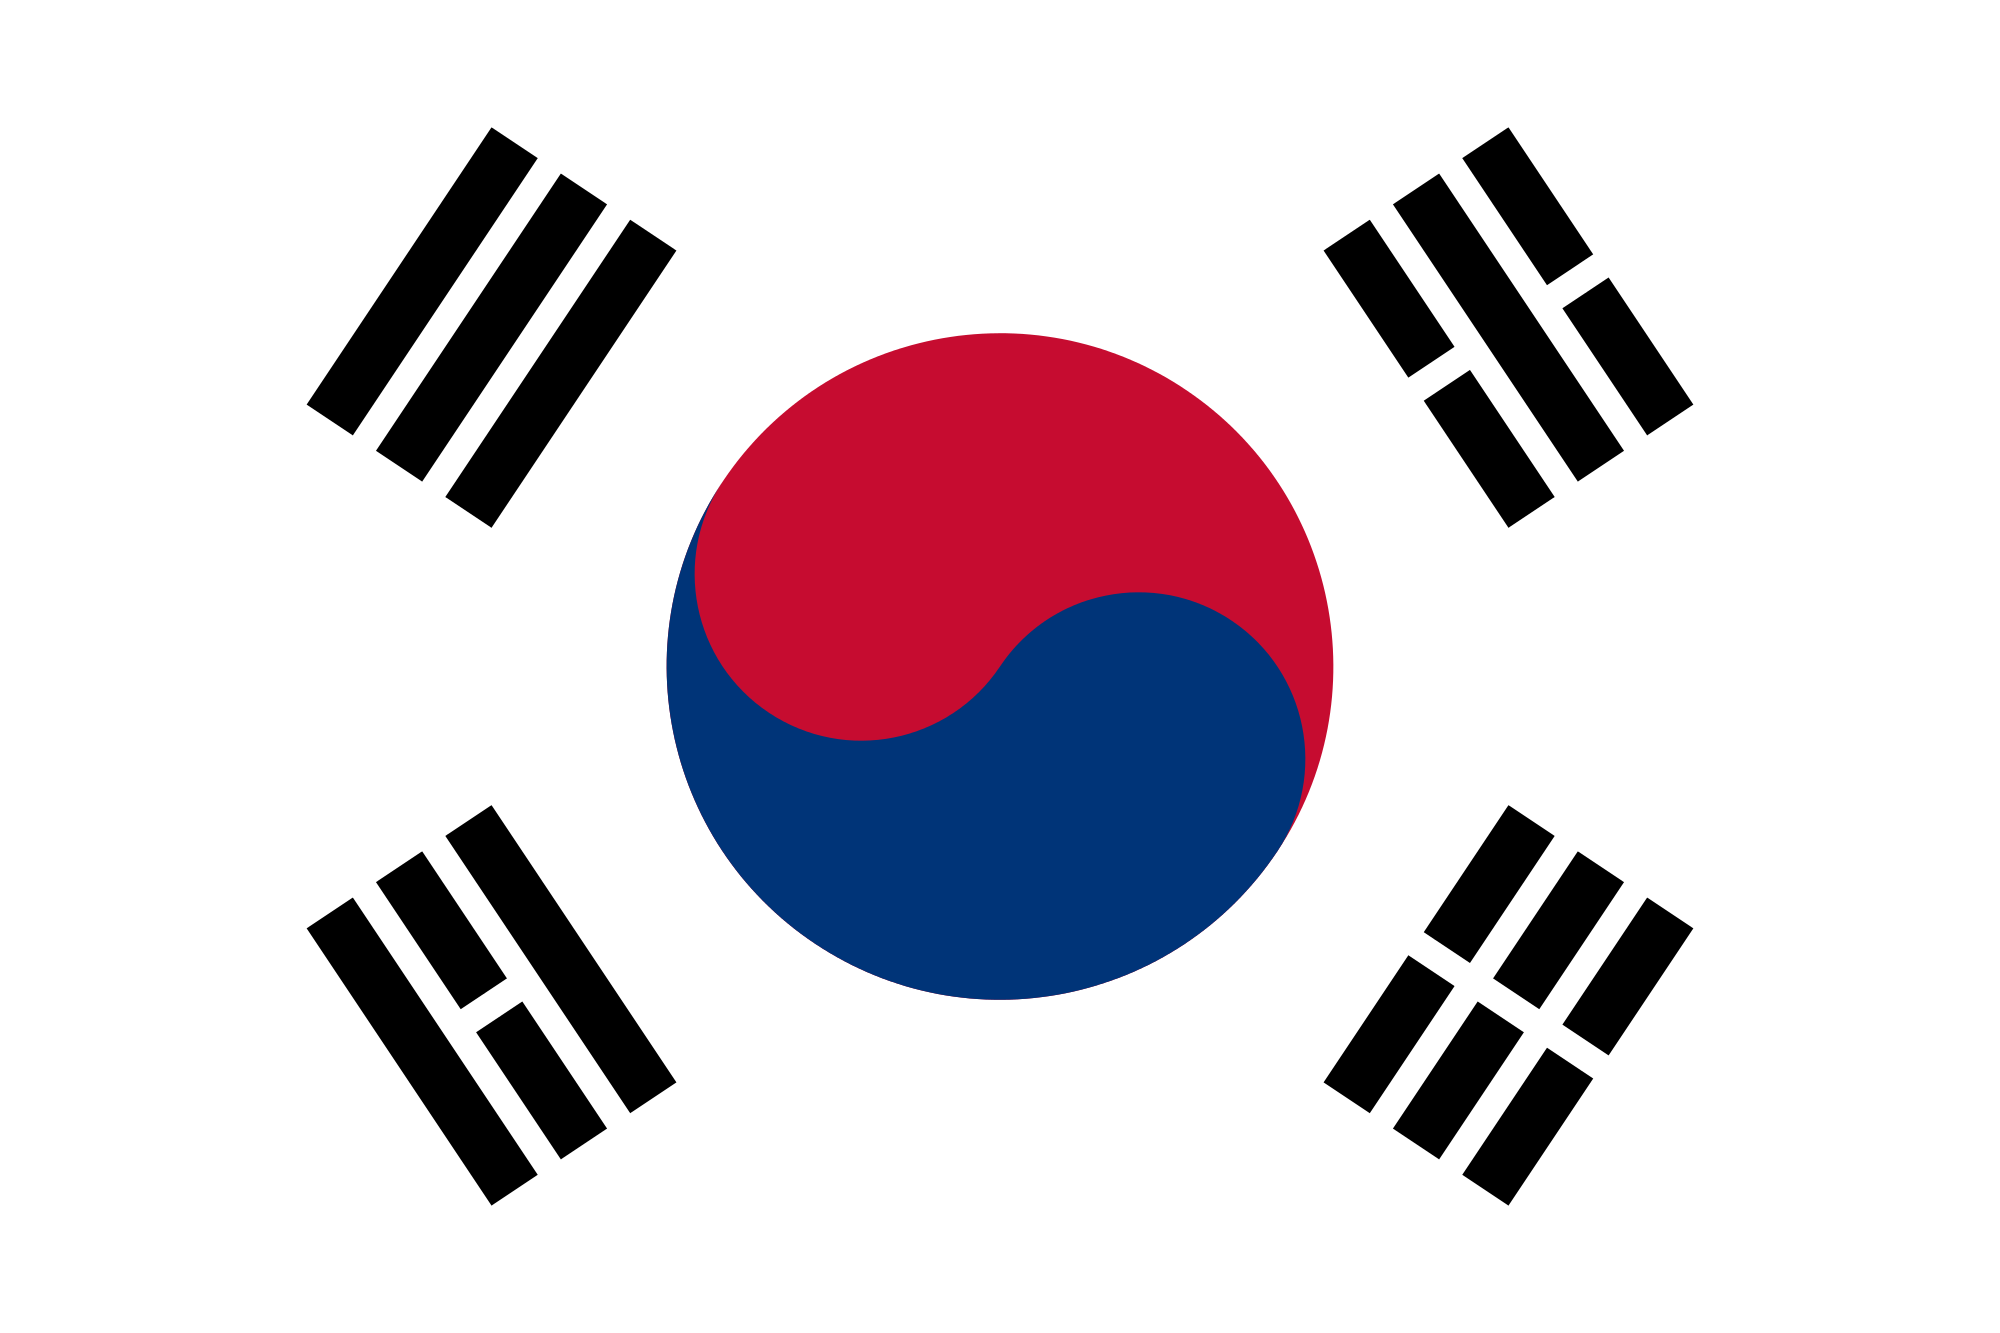 South Korea's Flag EnchantedLearning.com